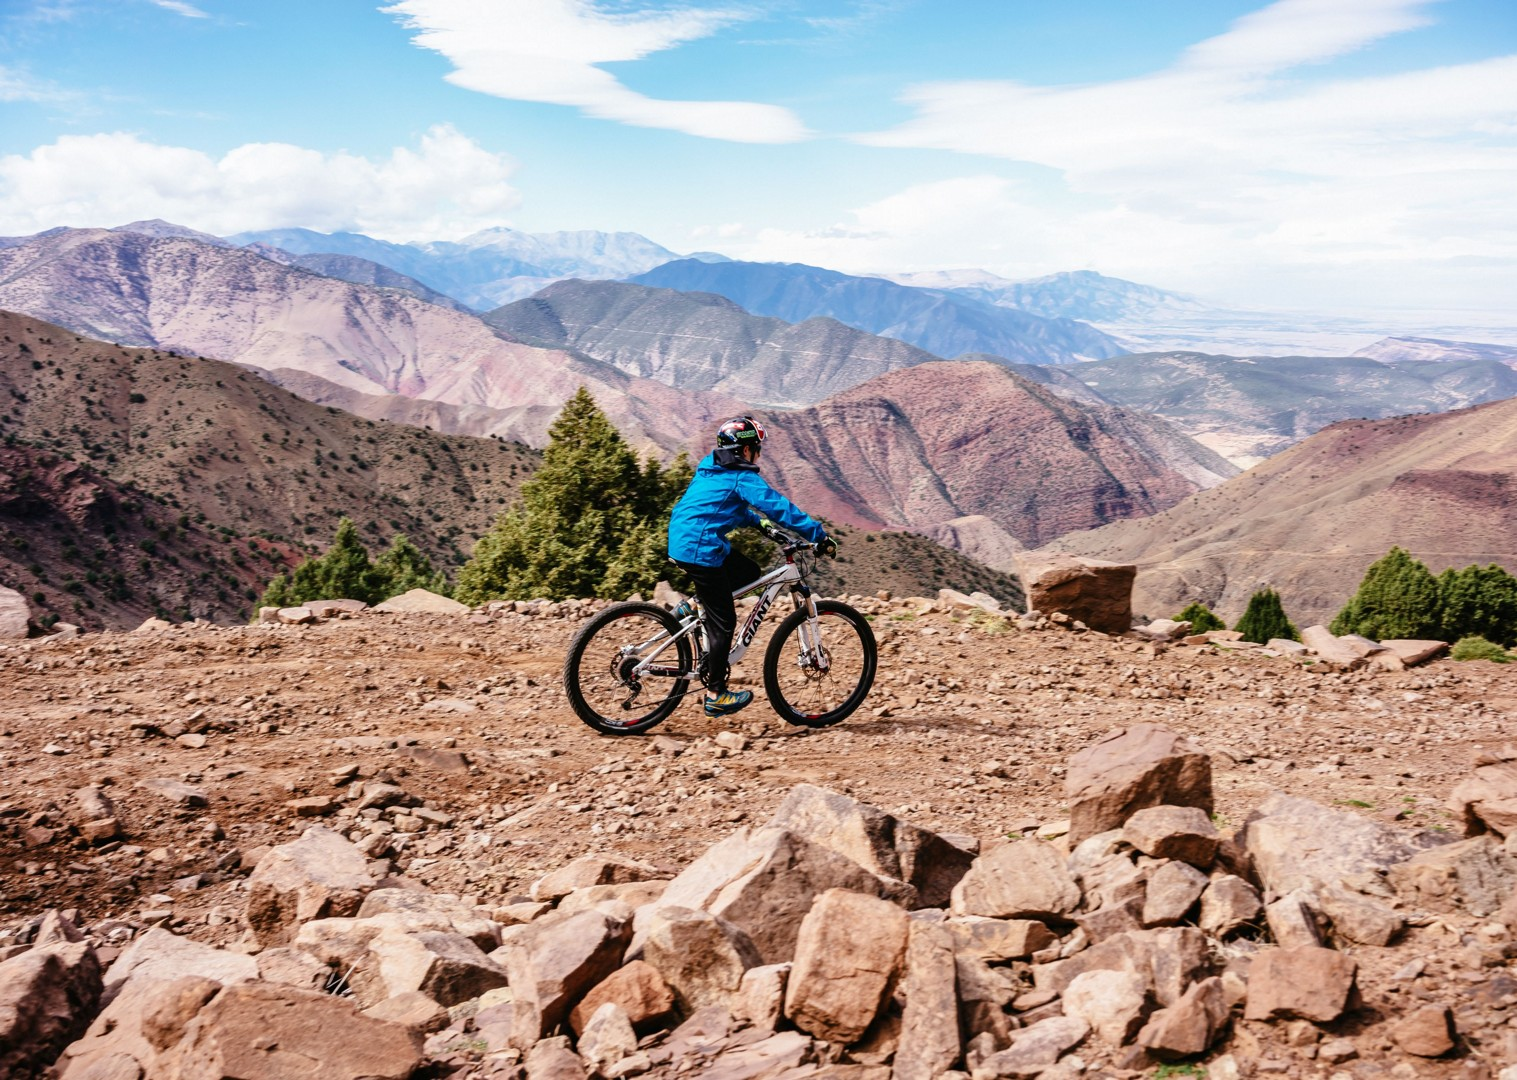 Family-Cycling-Holiday-Morocco-Desert-Mountains-Coast-biking - Morocco - Desert, Mountains and Coast - Family Cycling